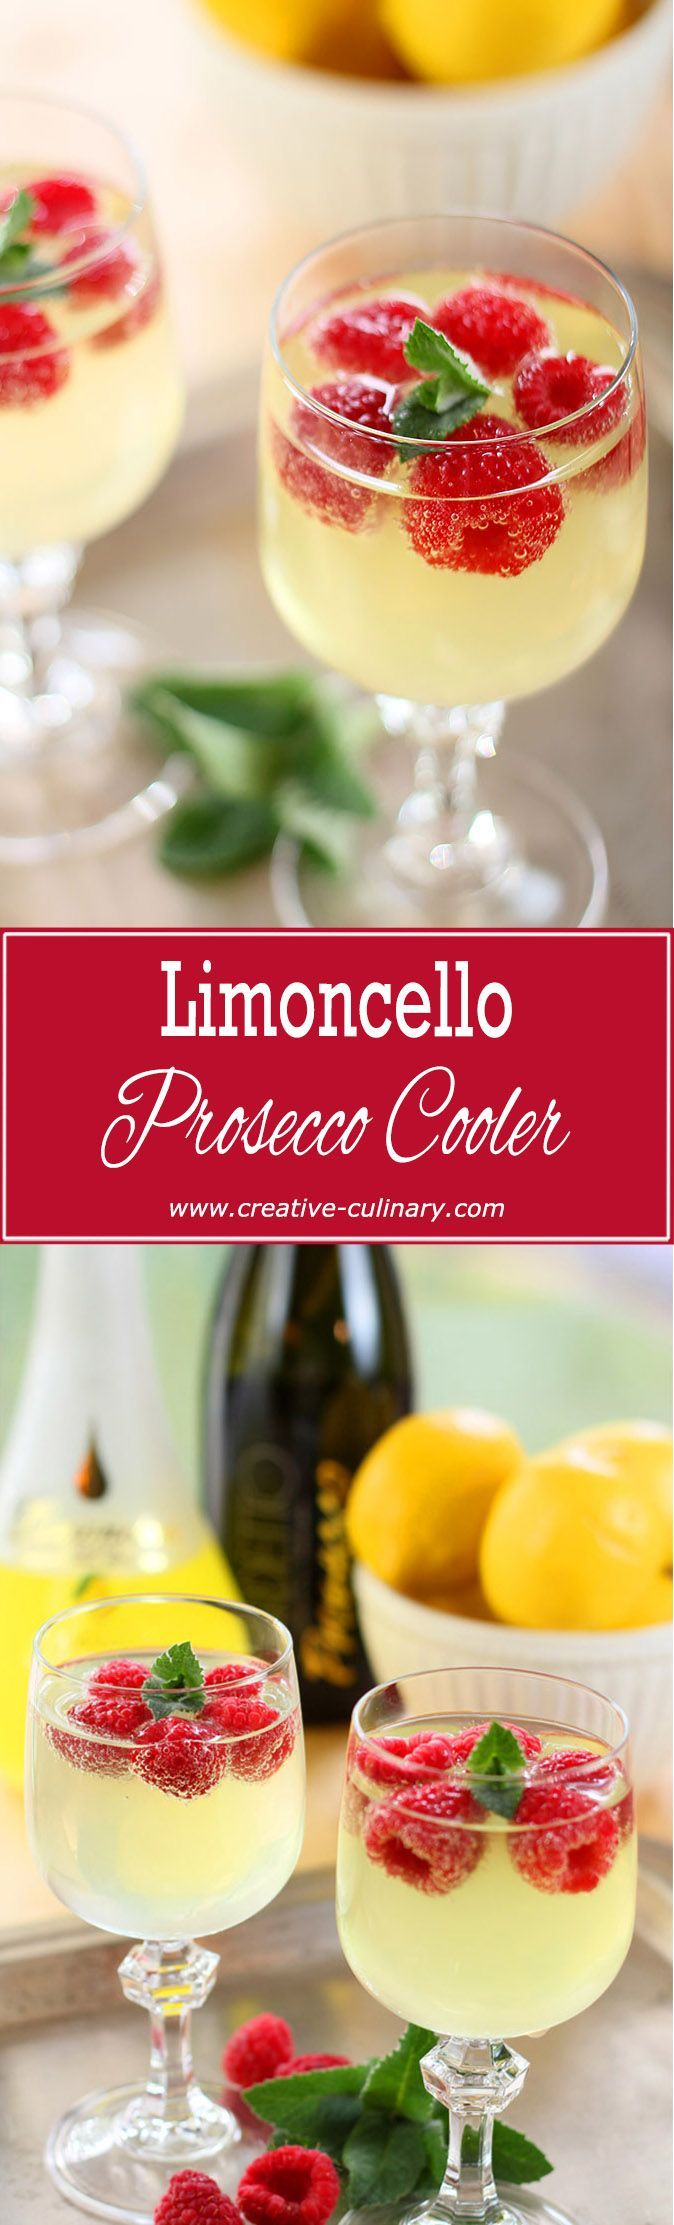 This Raspberry Limoncello And Prosecco Cooler Is A Simple And Lovely Cocktail Featuring Limoncello And Italian Sparkling Wine Via Food Recipes Yummy Drinks